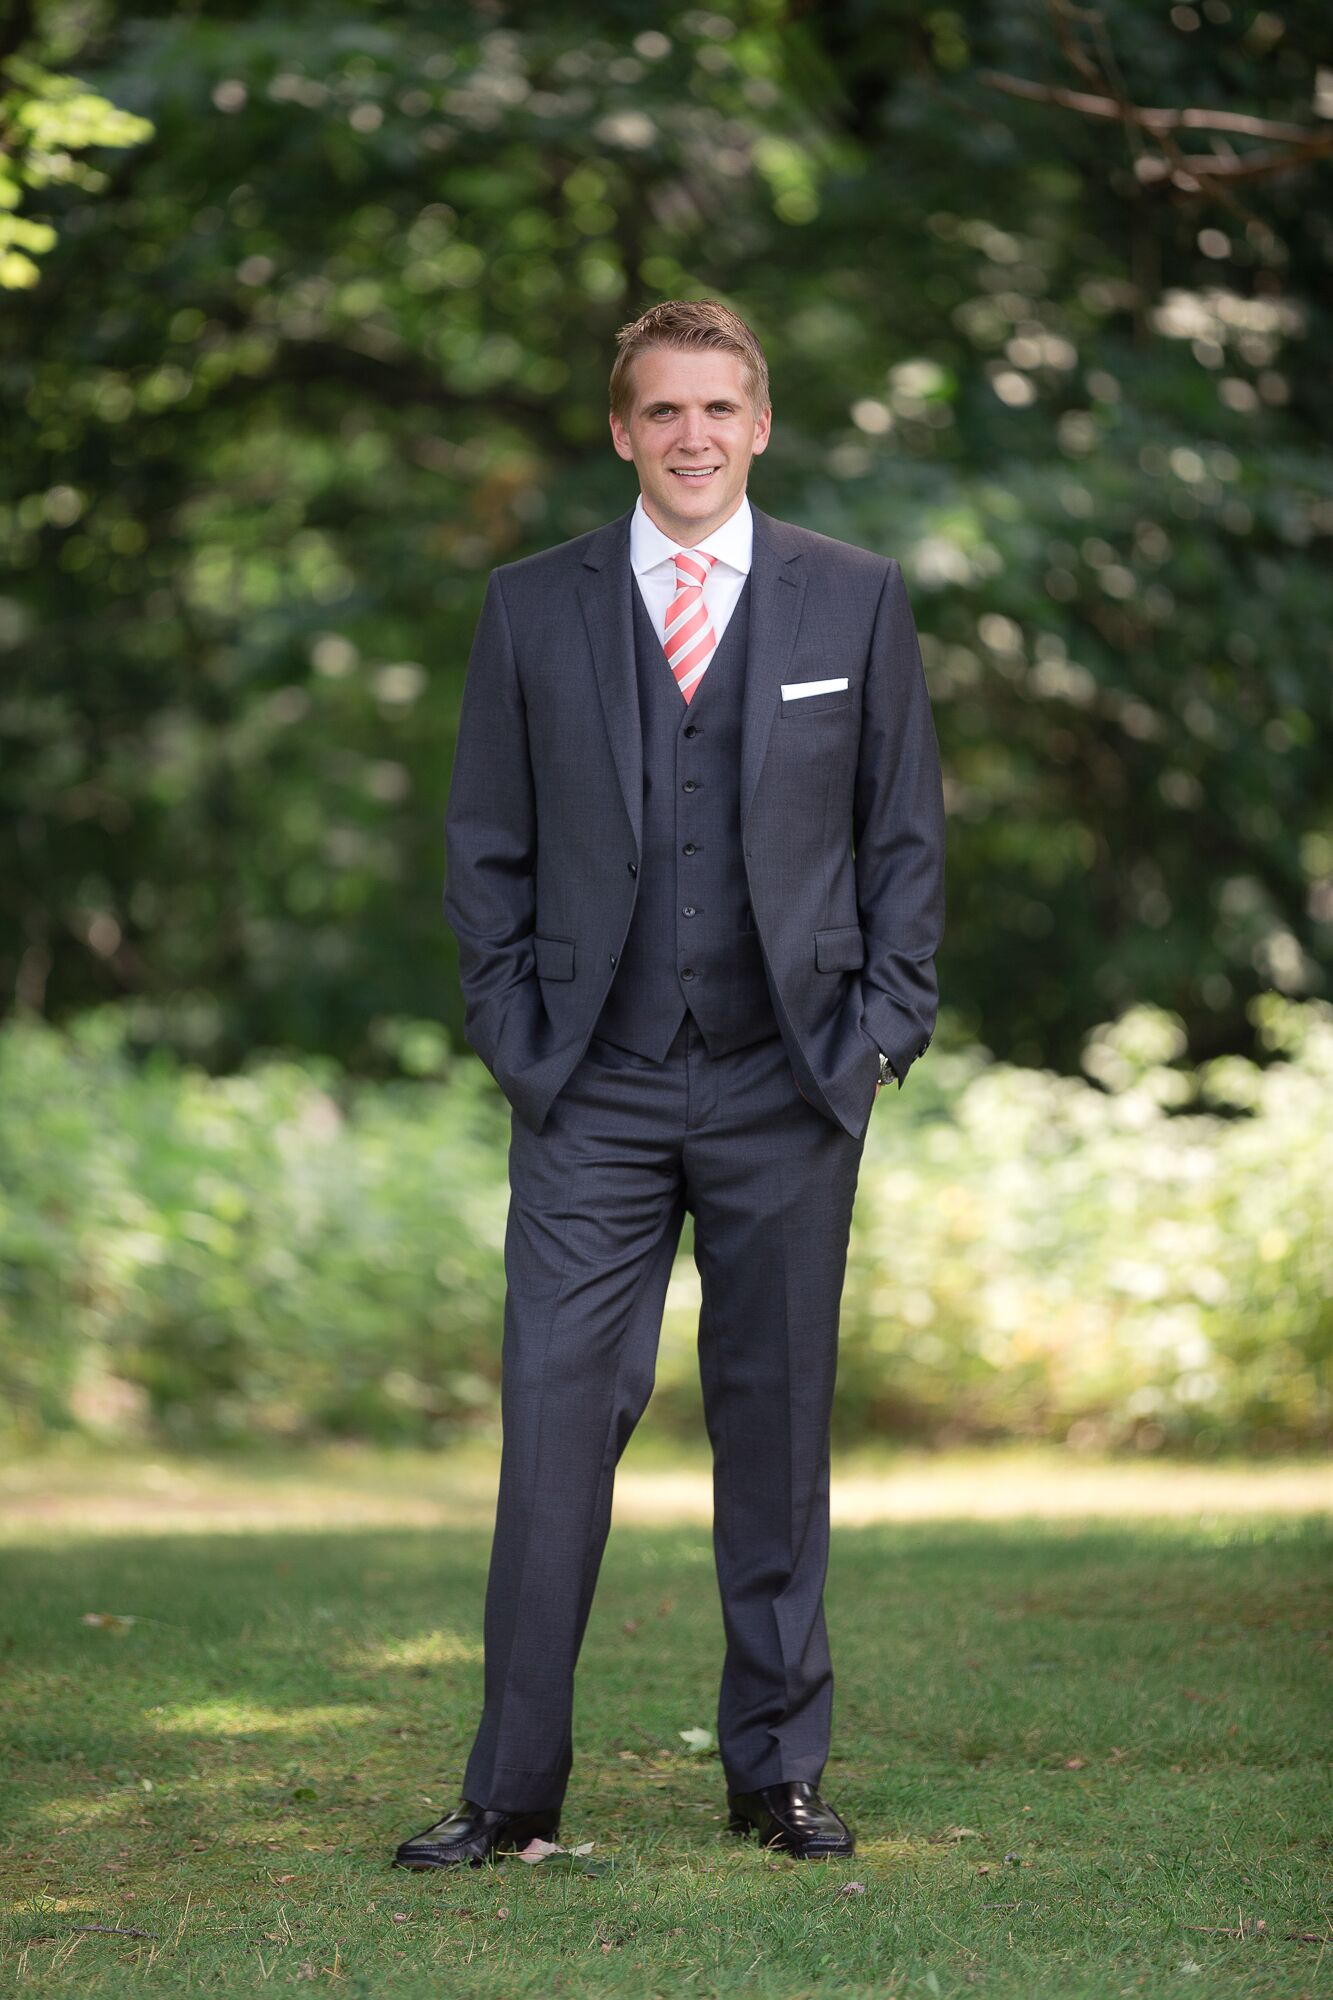 Dark Gray Groom Suit With White And Coral Tie